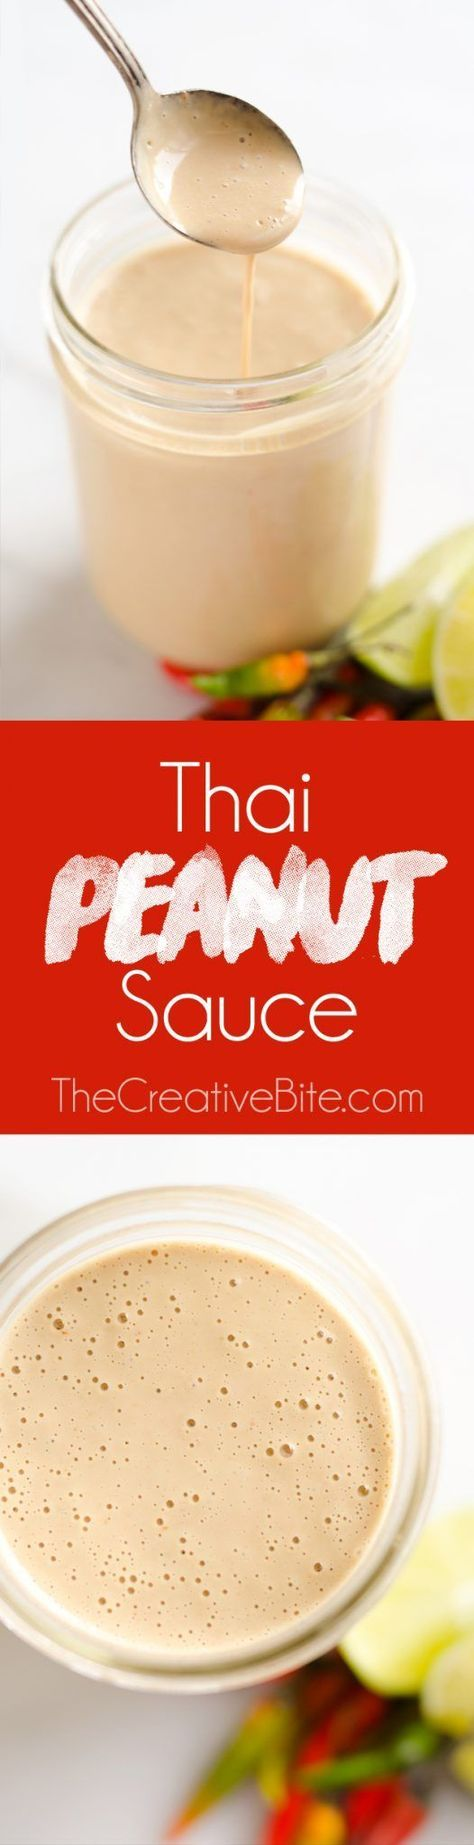 thai peanut sauce is a quick sauce that is bursting with